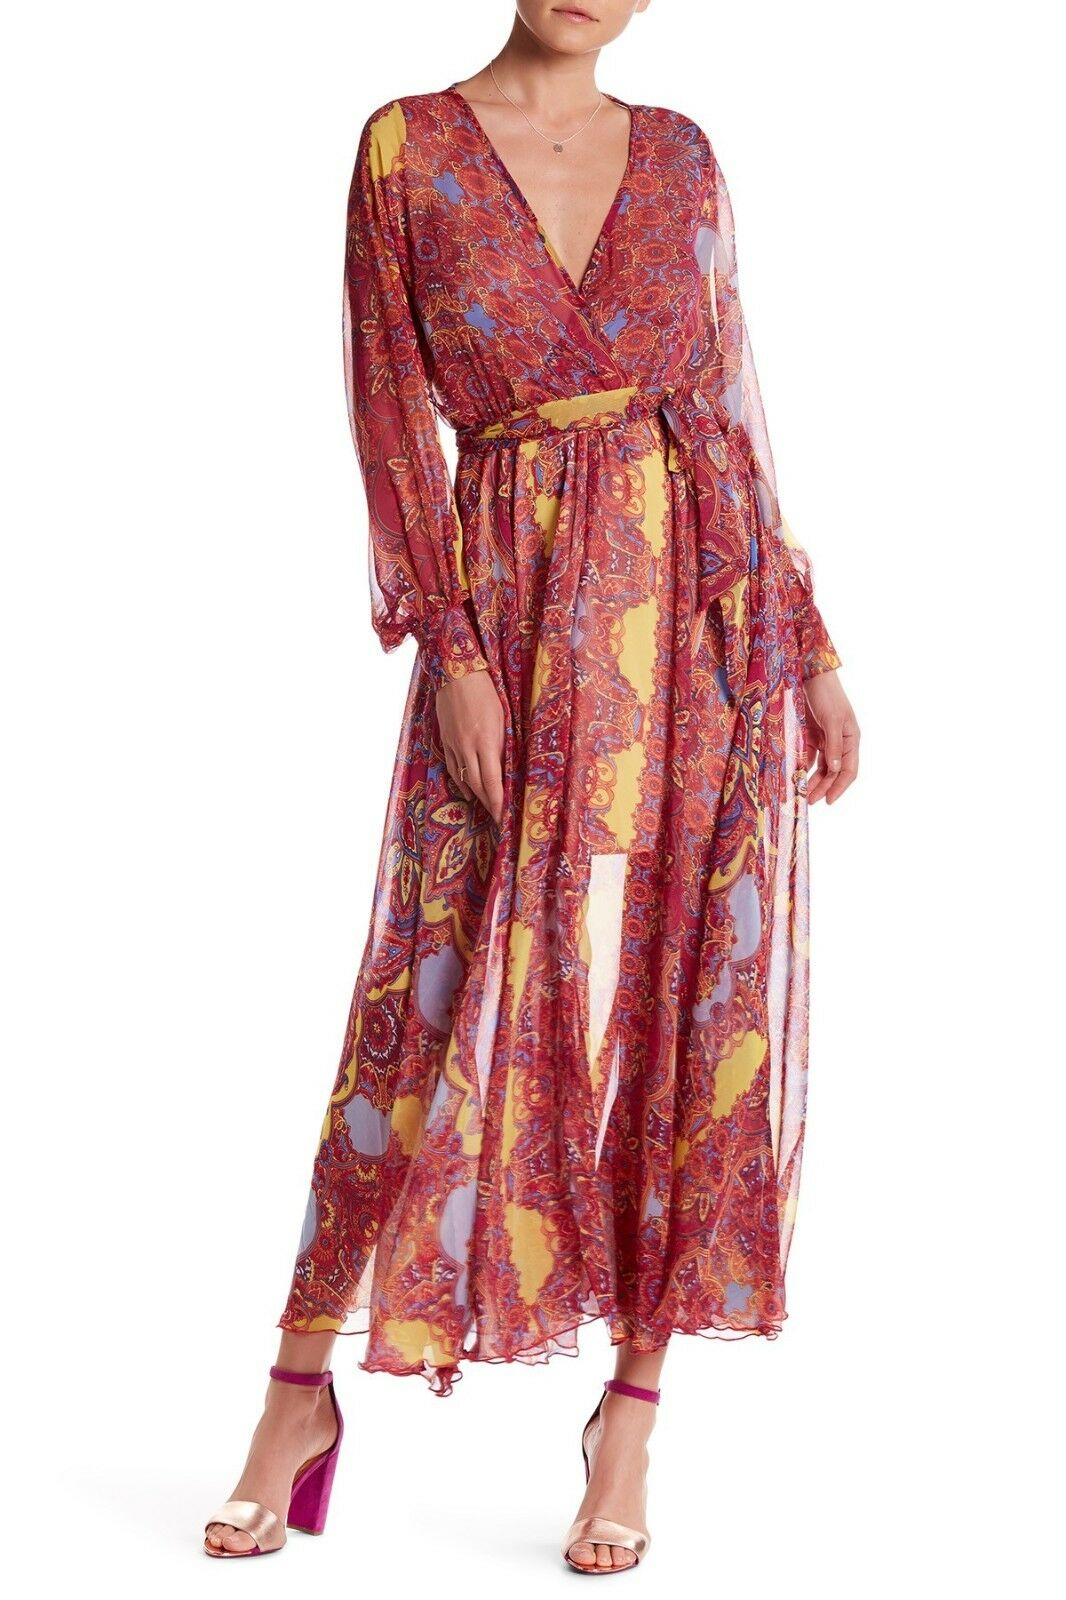 348 New Meghan LA Mon Cherie Wrap Maxi Dress Long Sleeves Burgundy Size Small S